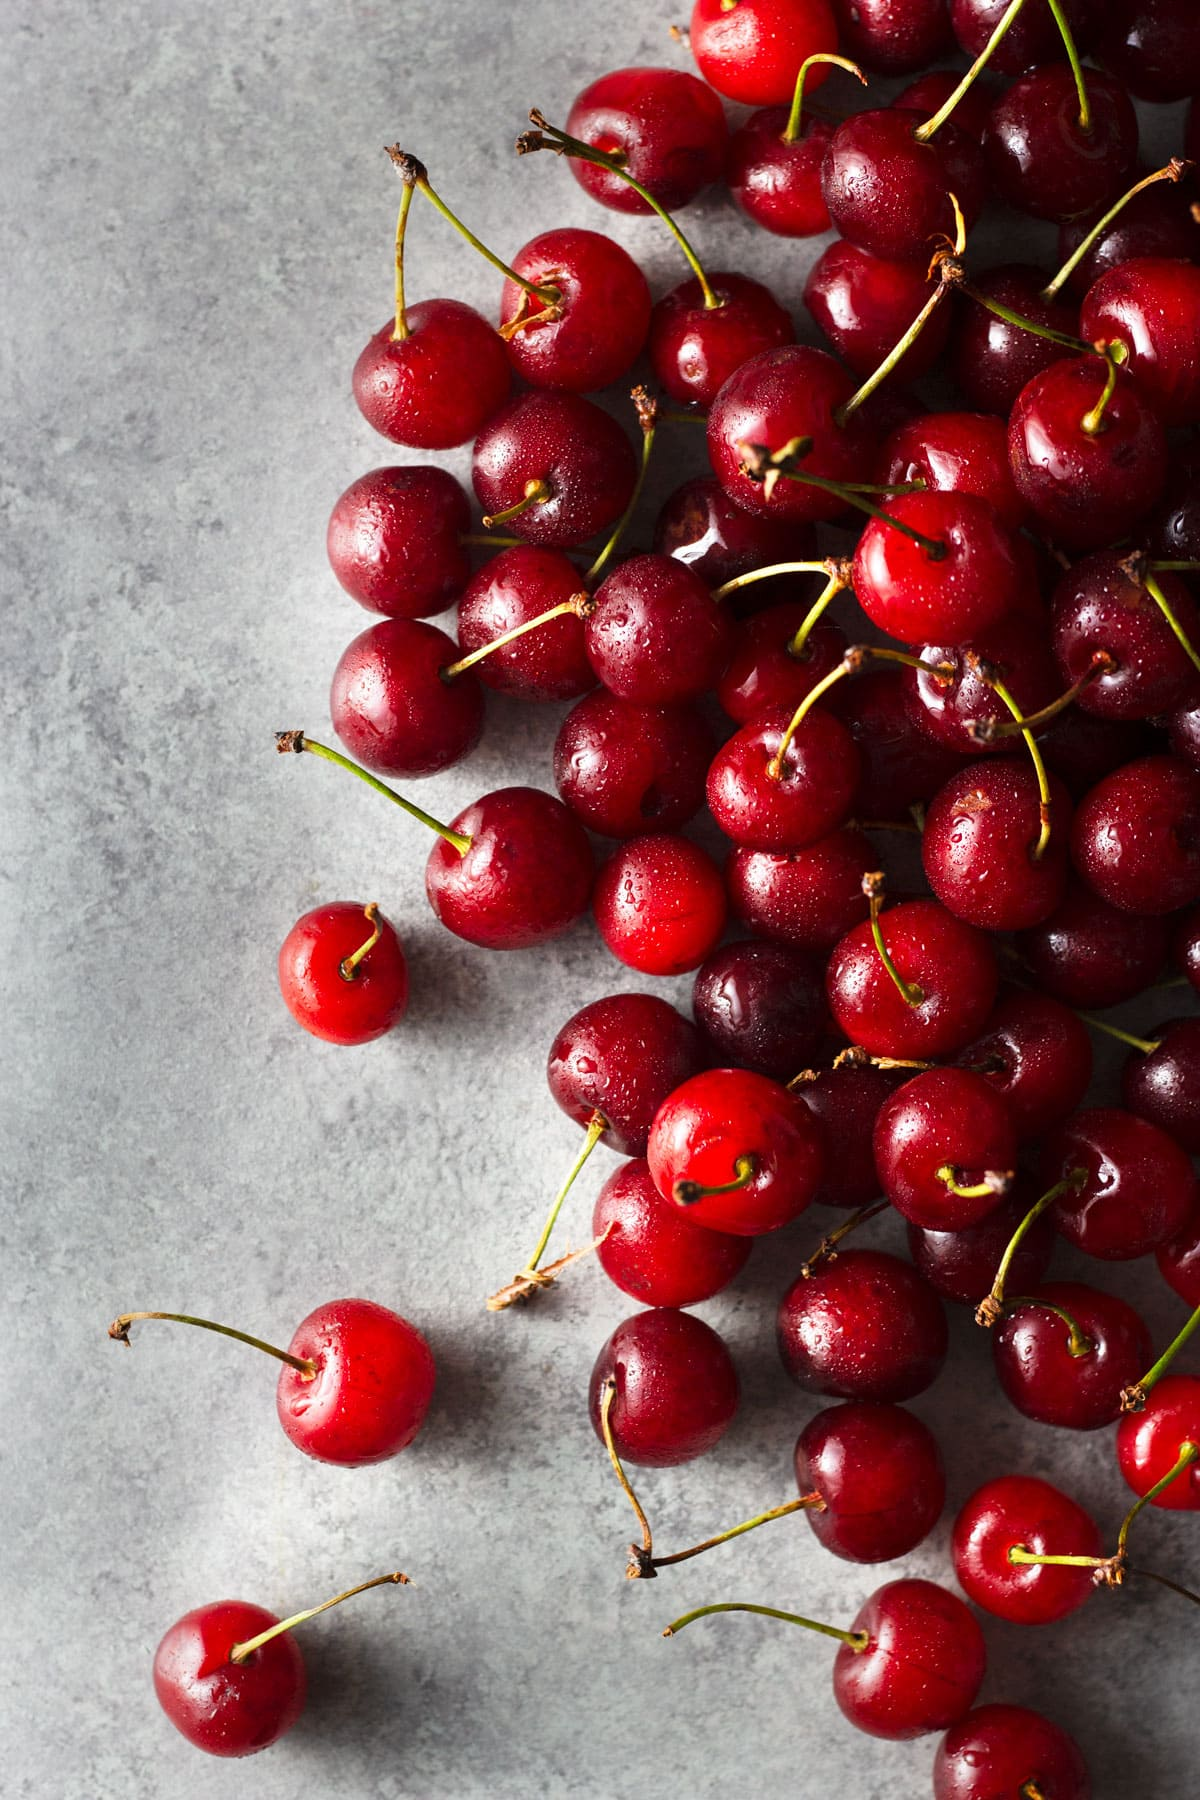 Overhead view of a group of sour cherries on a light grey surface.